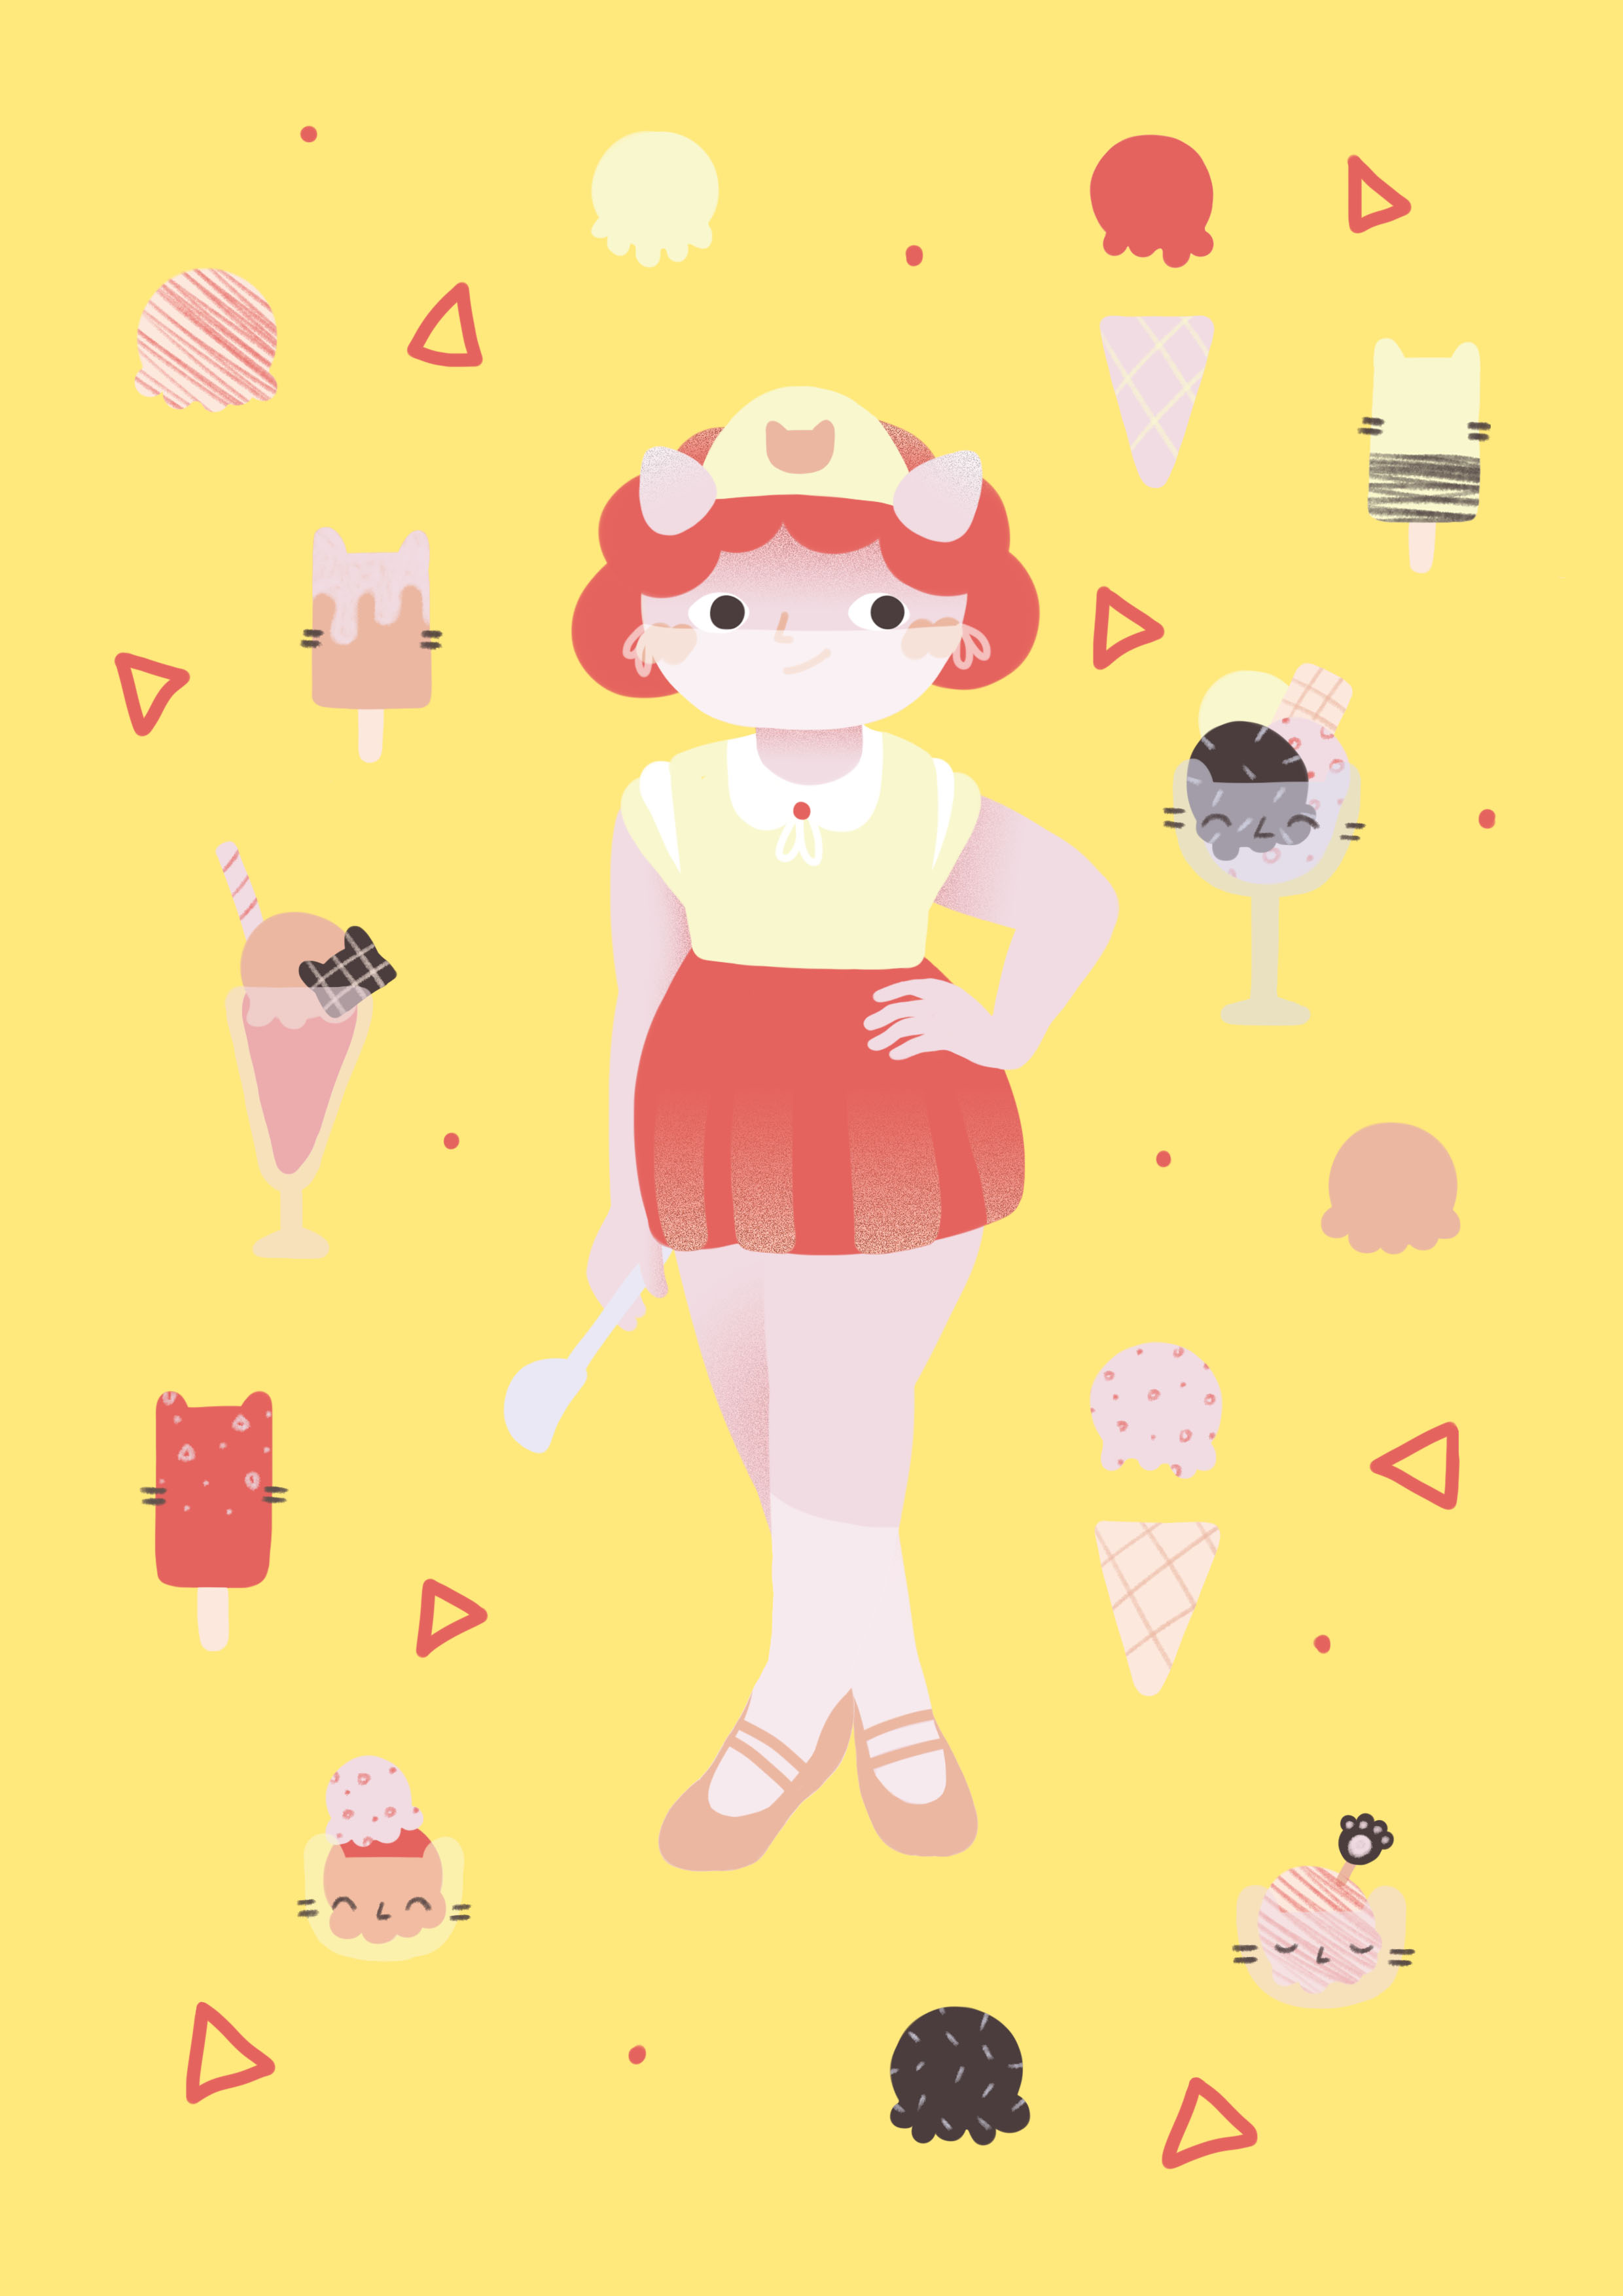 lucy_ice_yellow